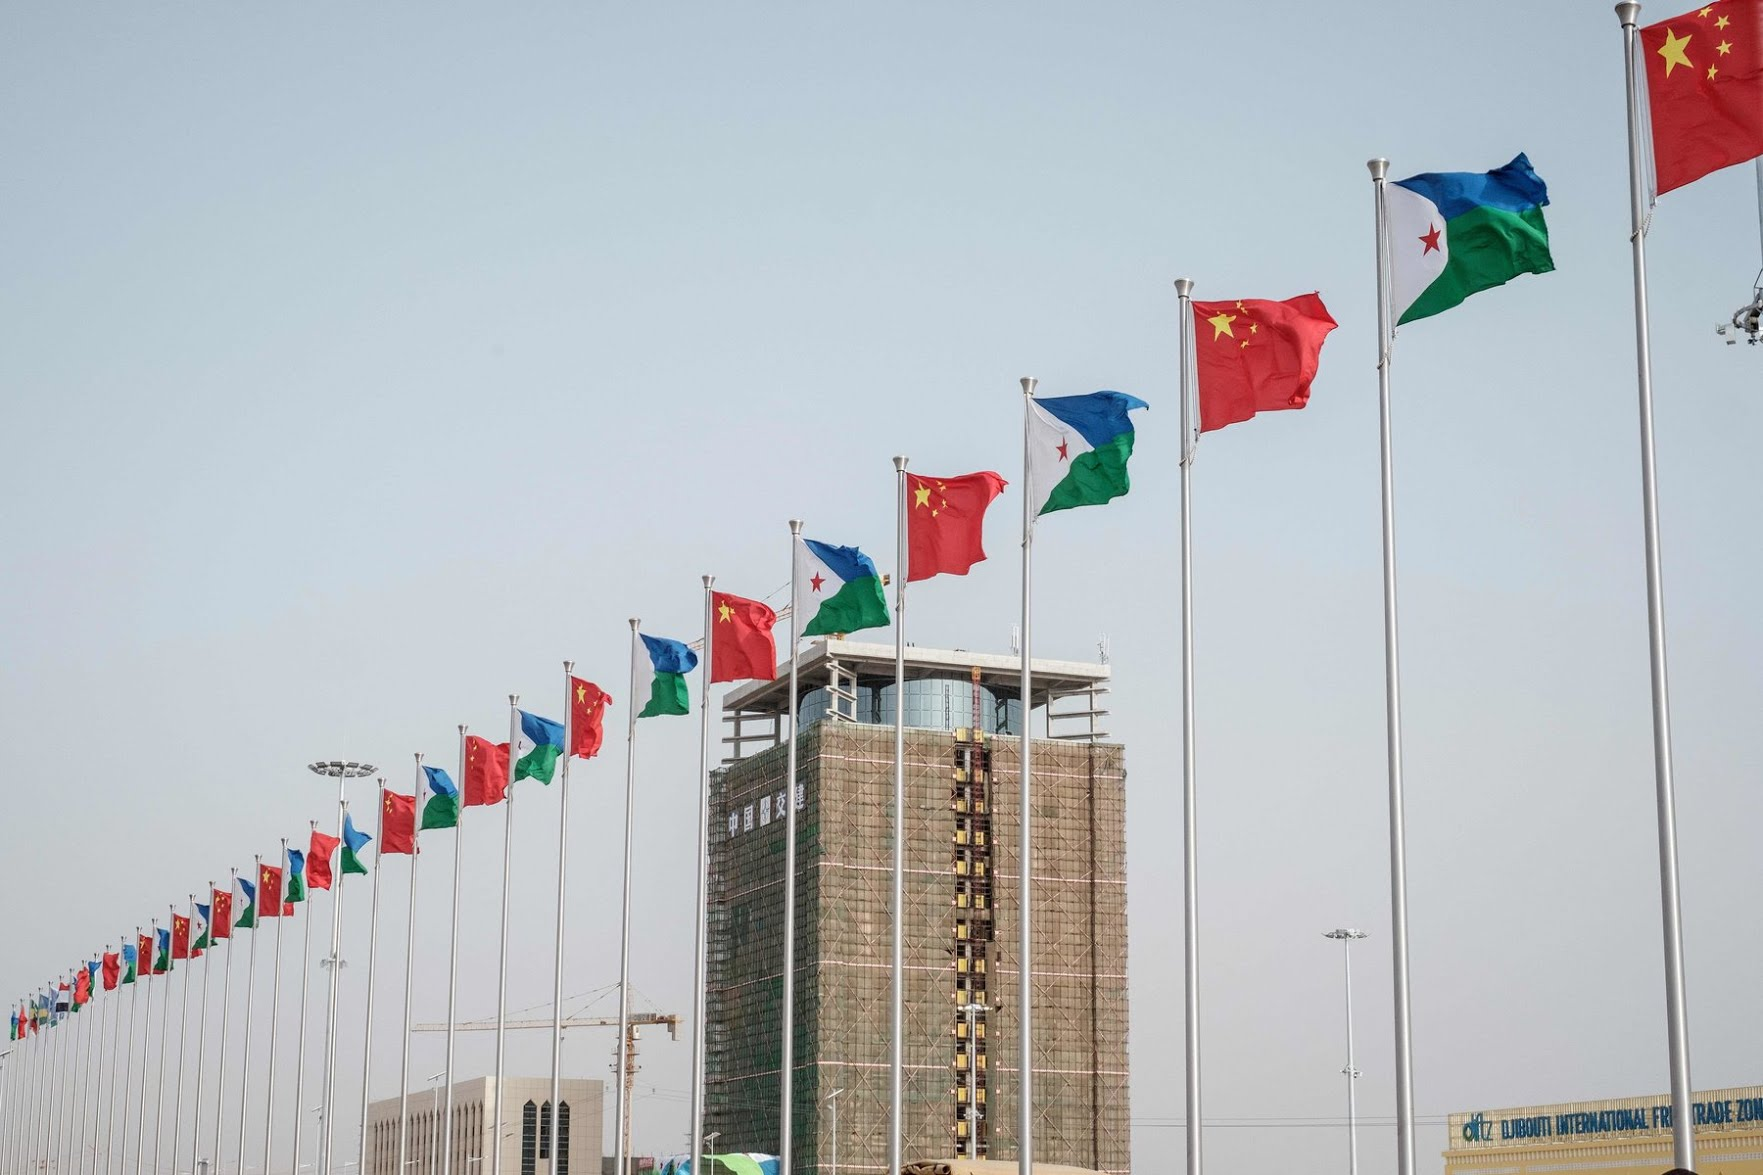 Djibouti's debts to China jumped to more than 80 percent of its annual economic output.